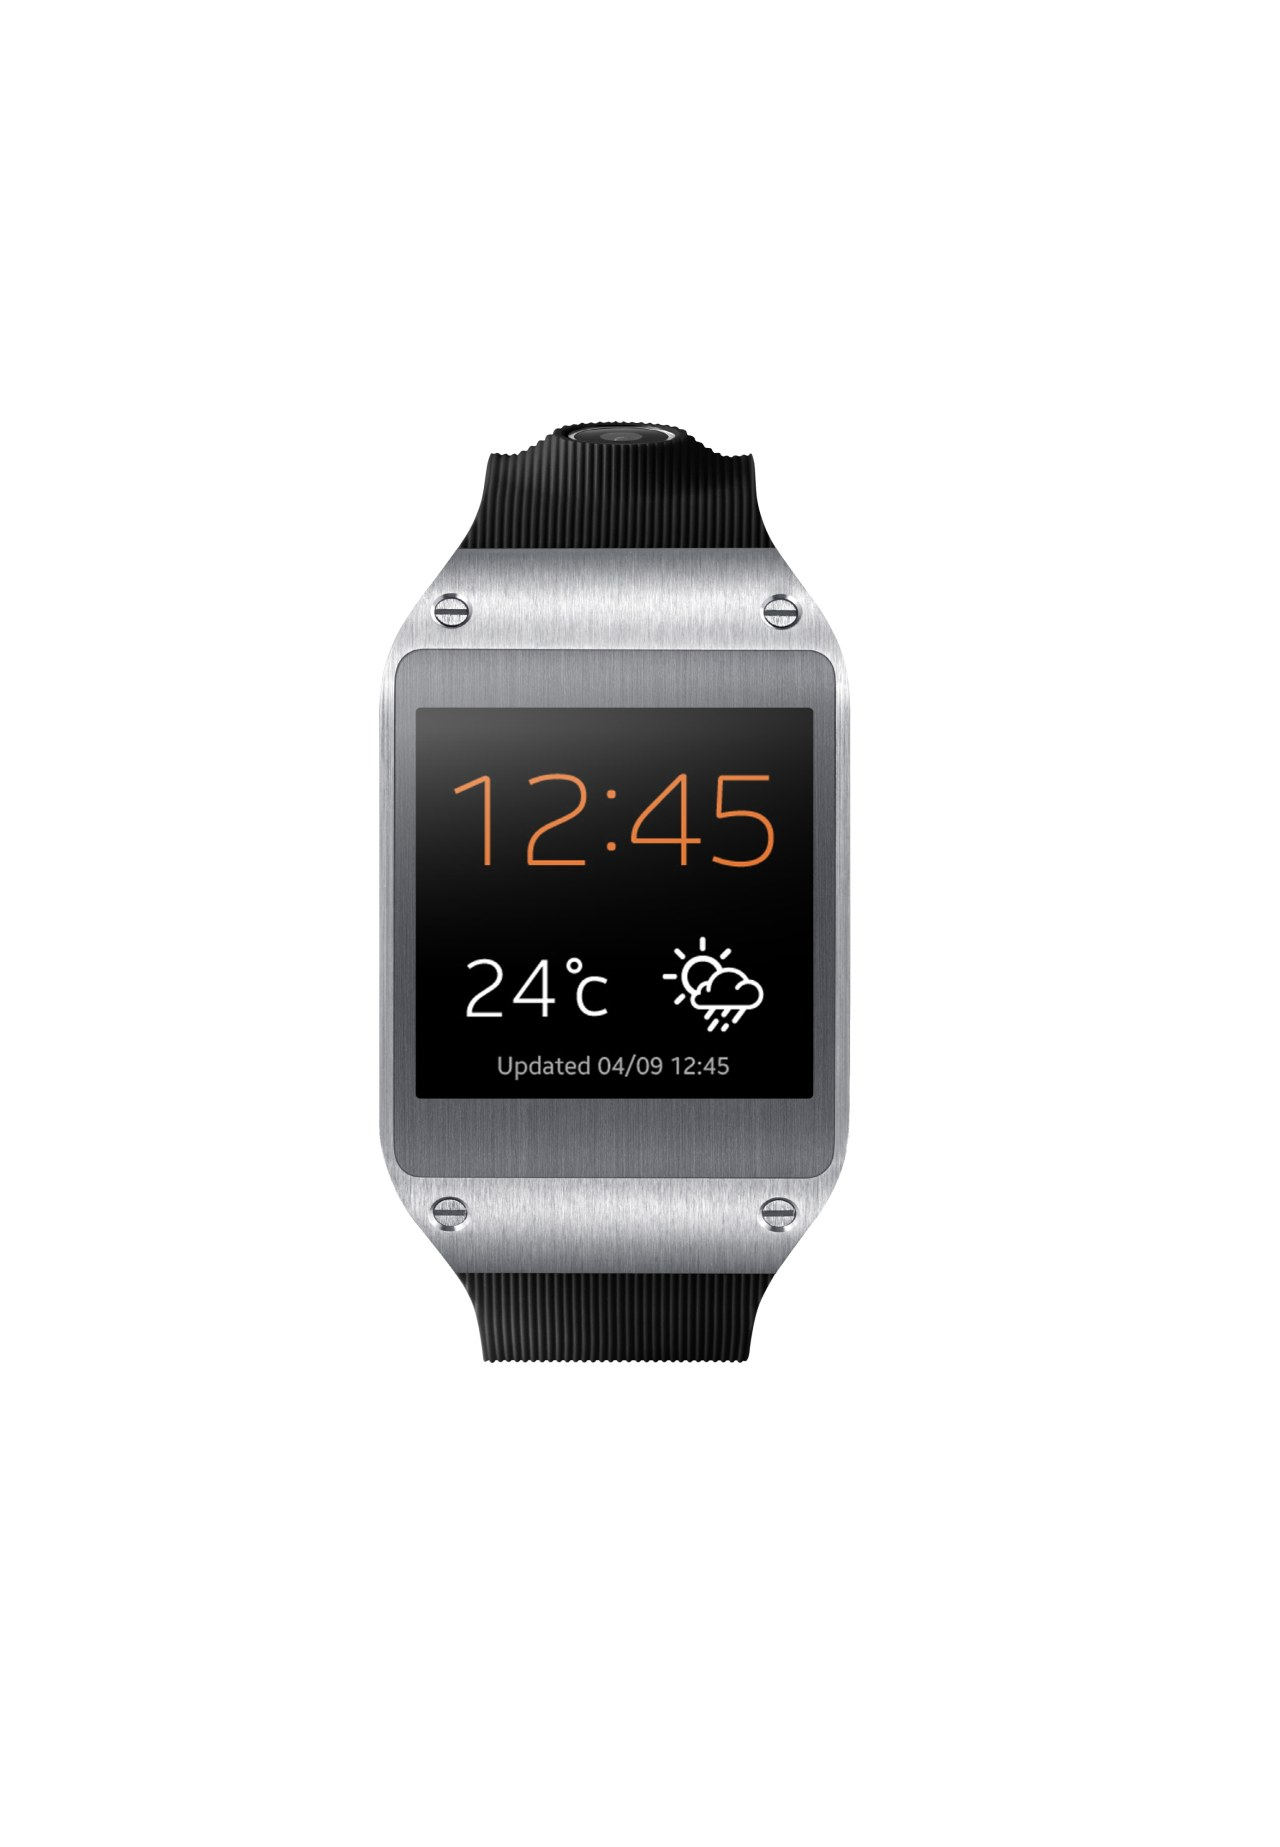 Samsung-Galaxy-Gear-001.jpg